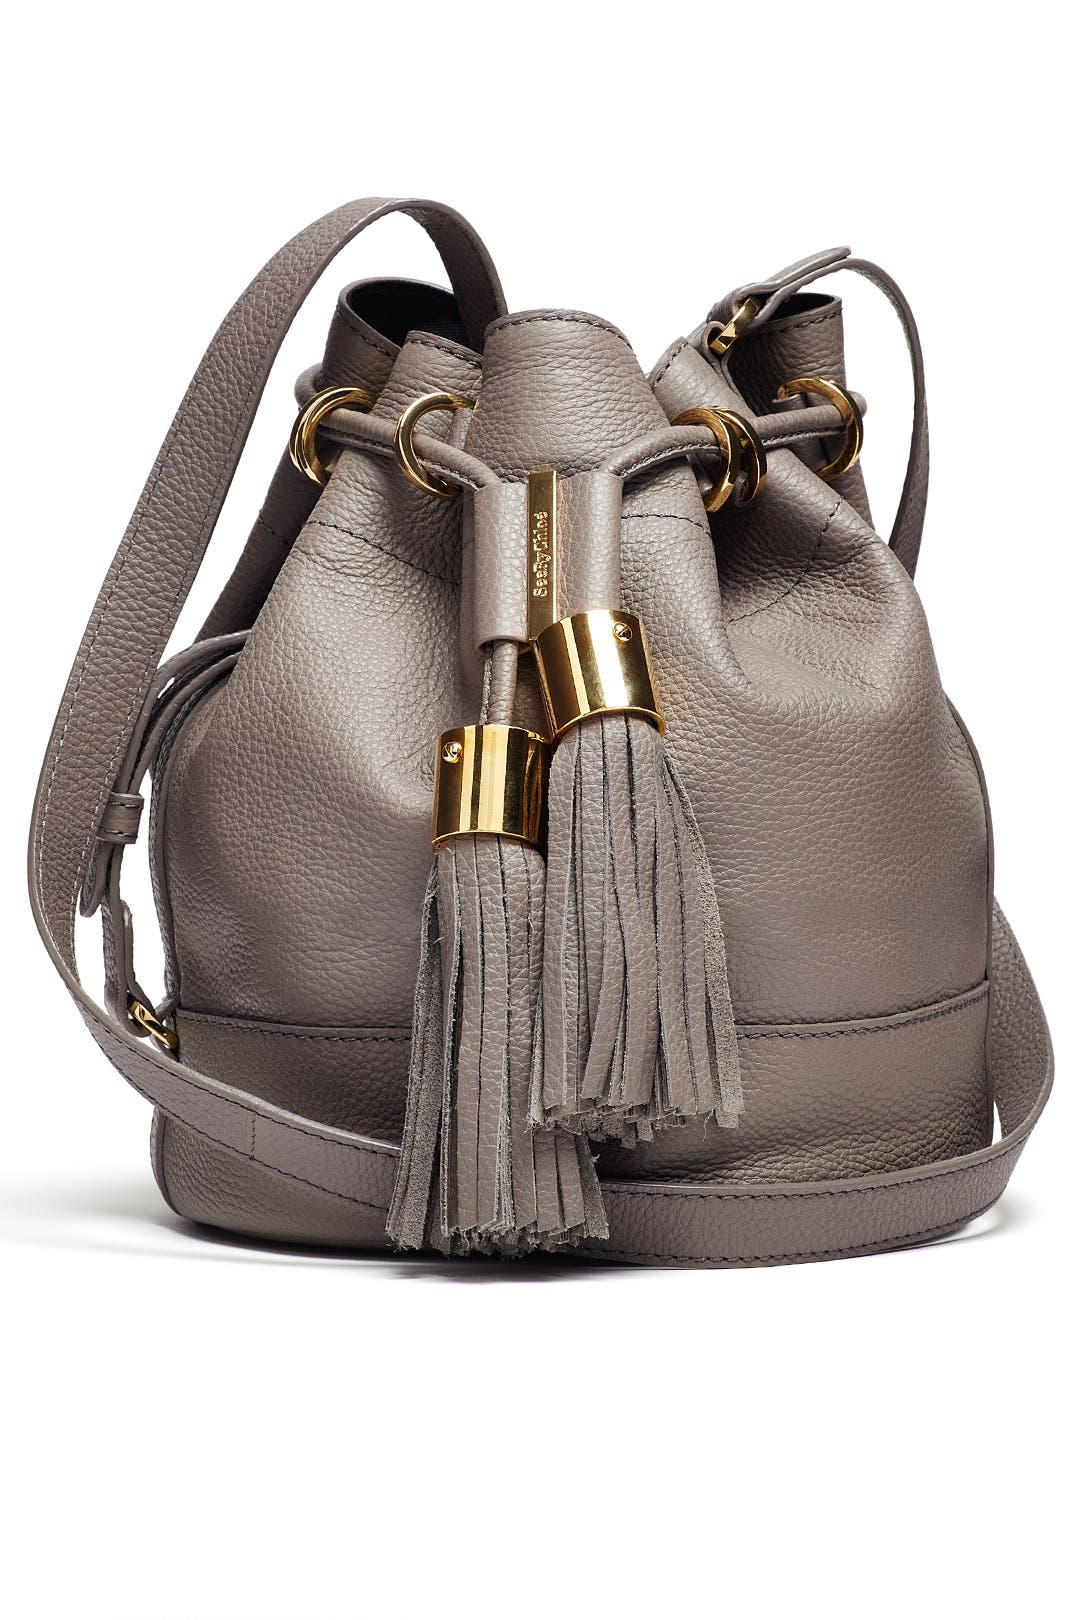 Grey Vicki Small Leather Bucket Bag By See Chloe Accessories For 70 Rent The Runway